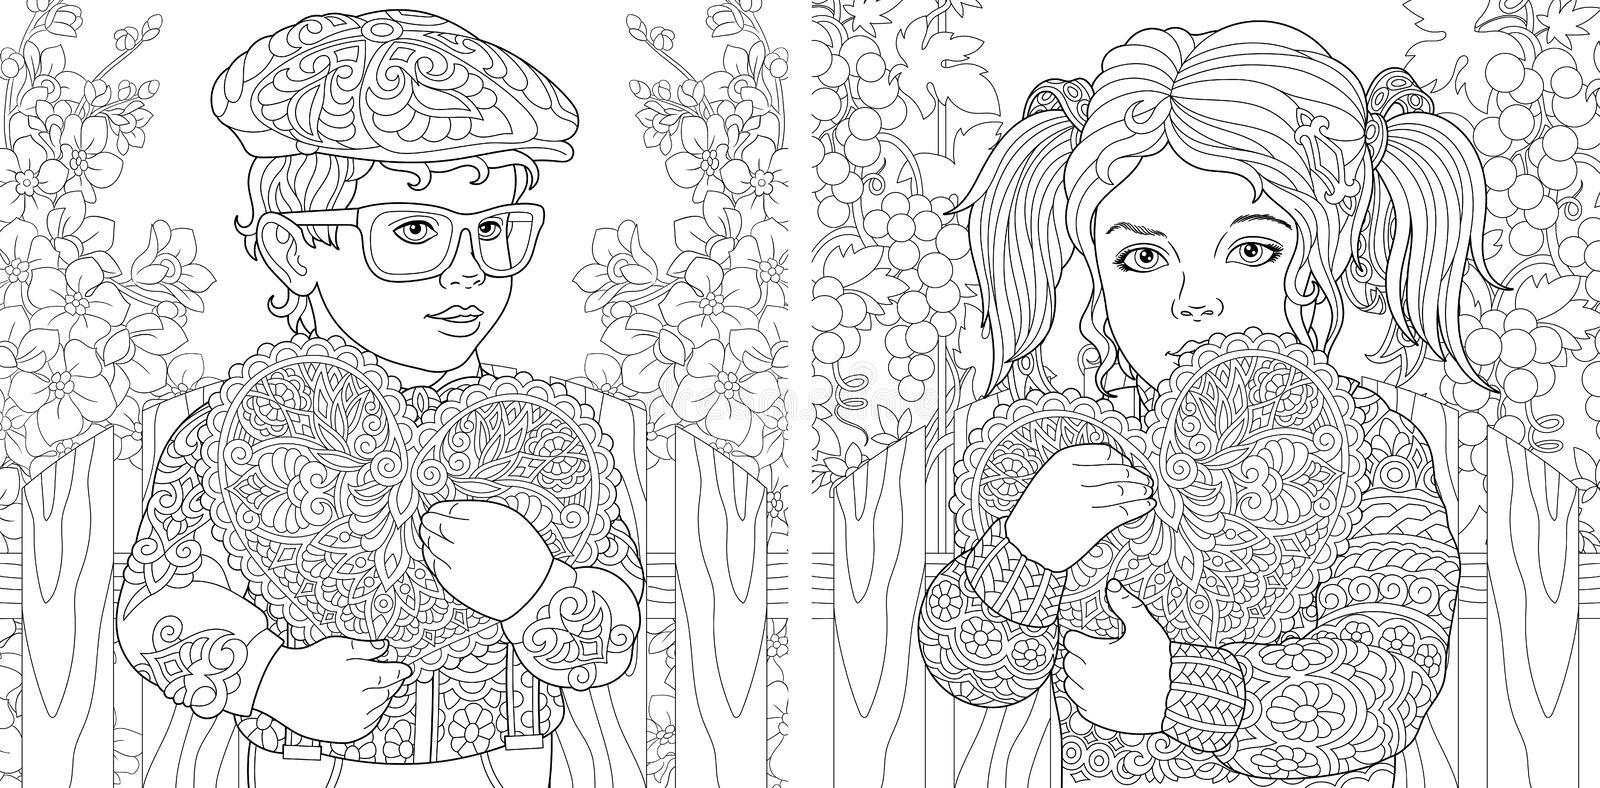 Love. Coloring Pages. Coloring Book for adults. Colouring pictures with lovely kids holding valentines day hearts. Vector stock images